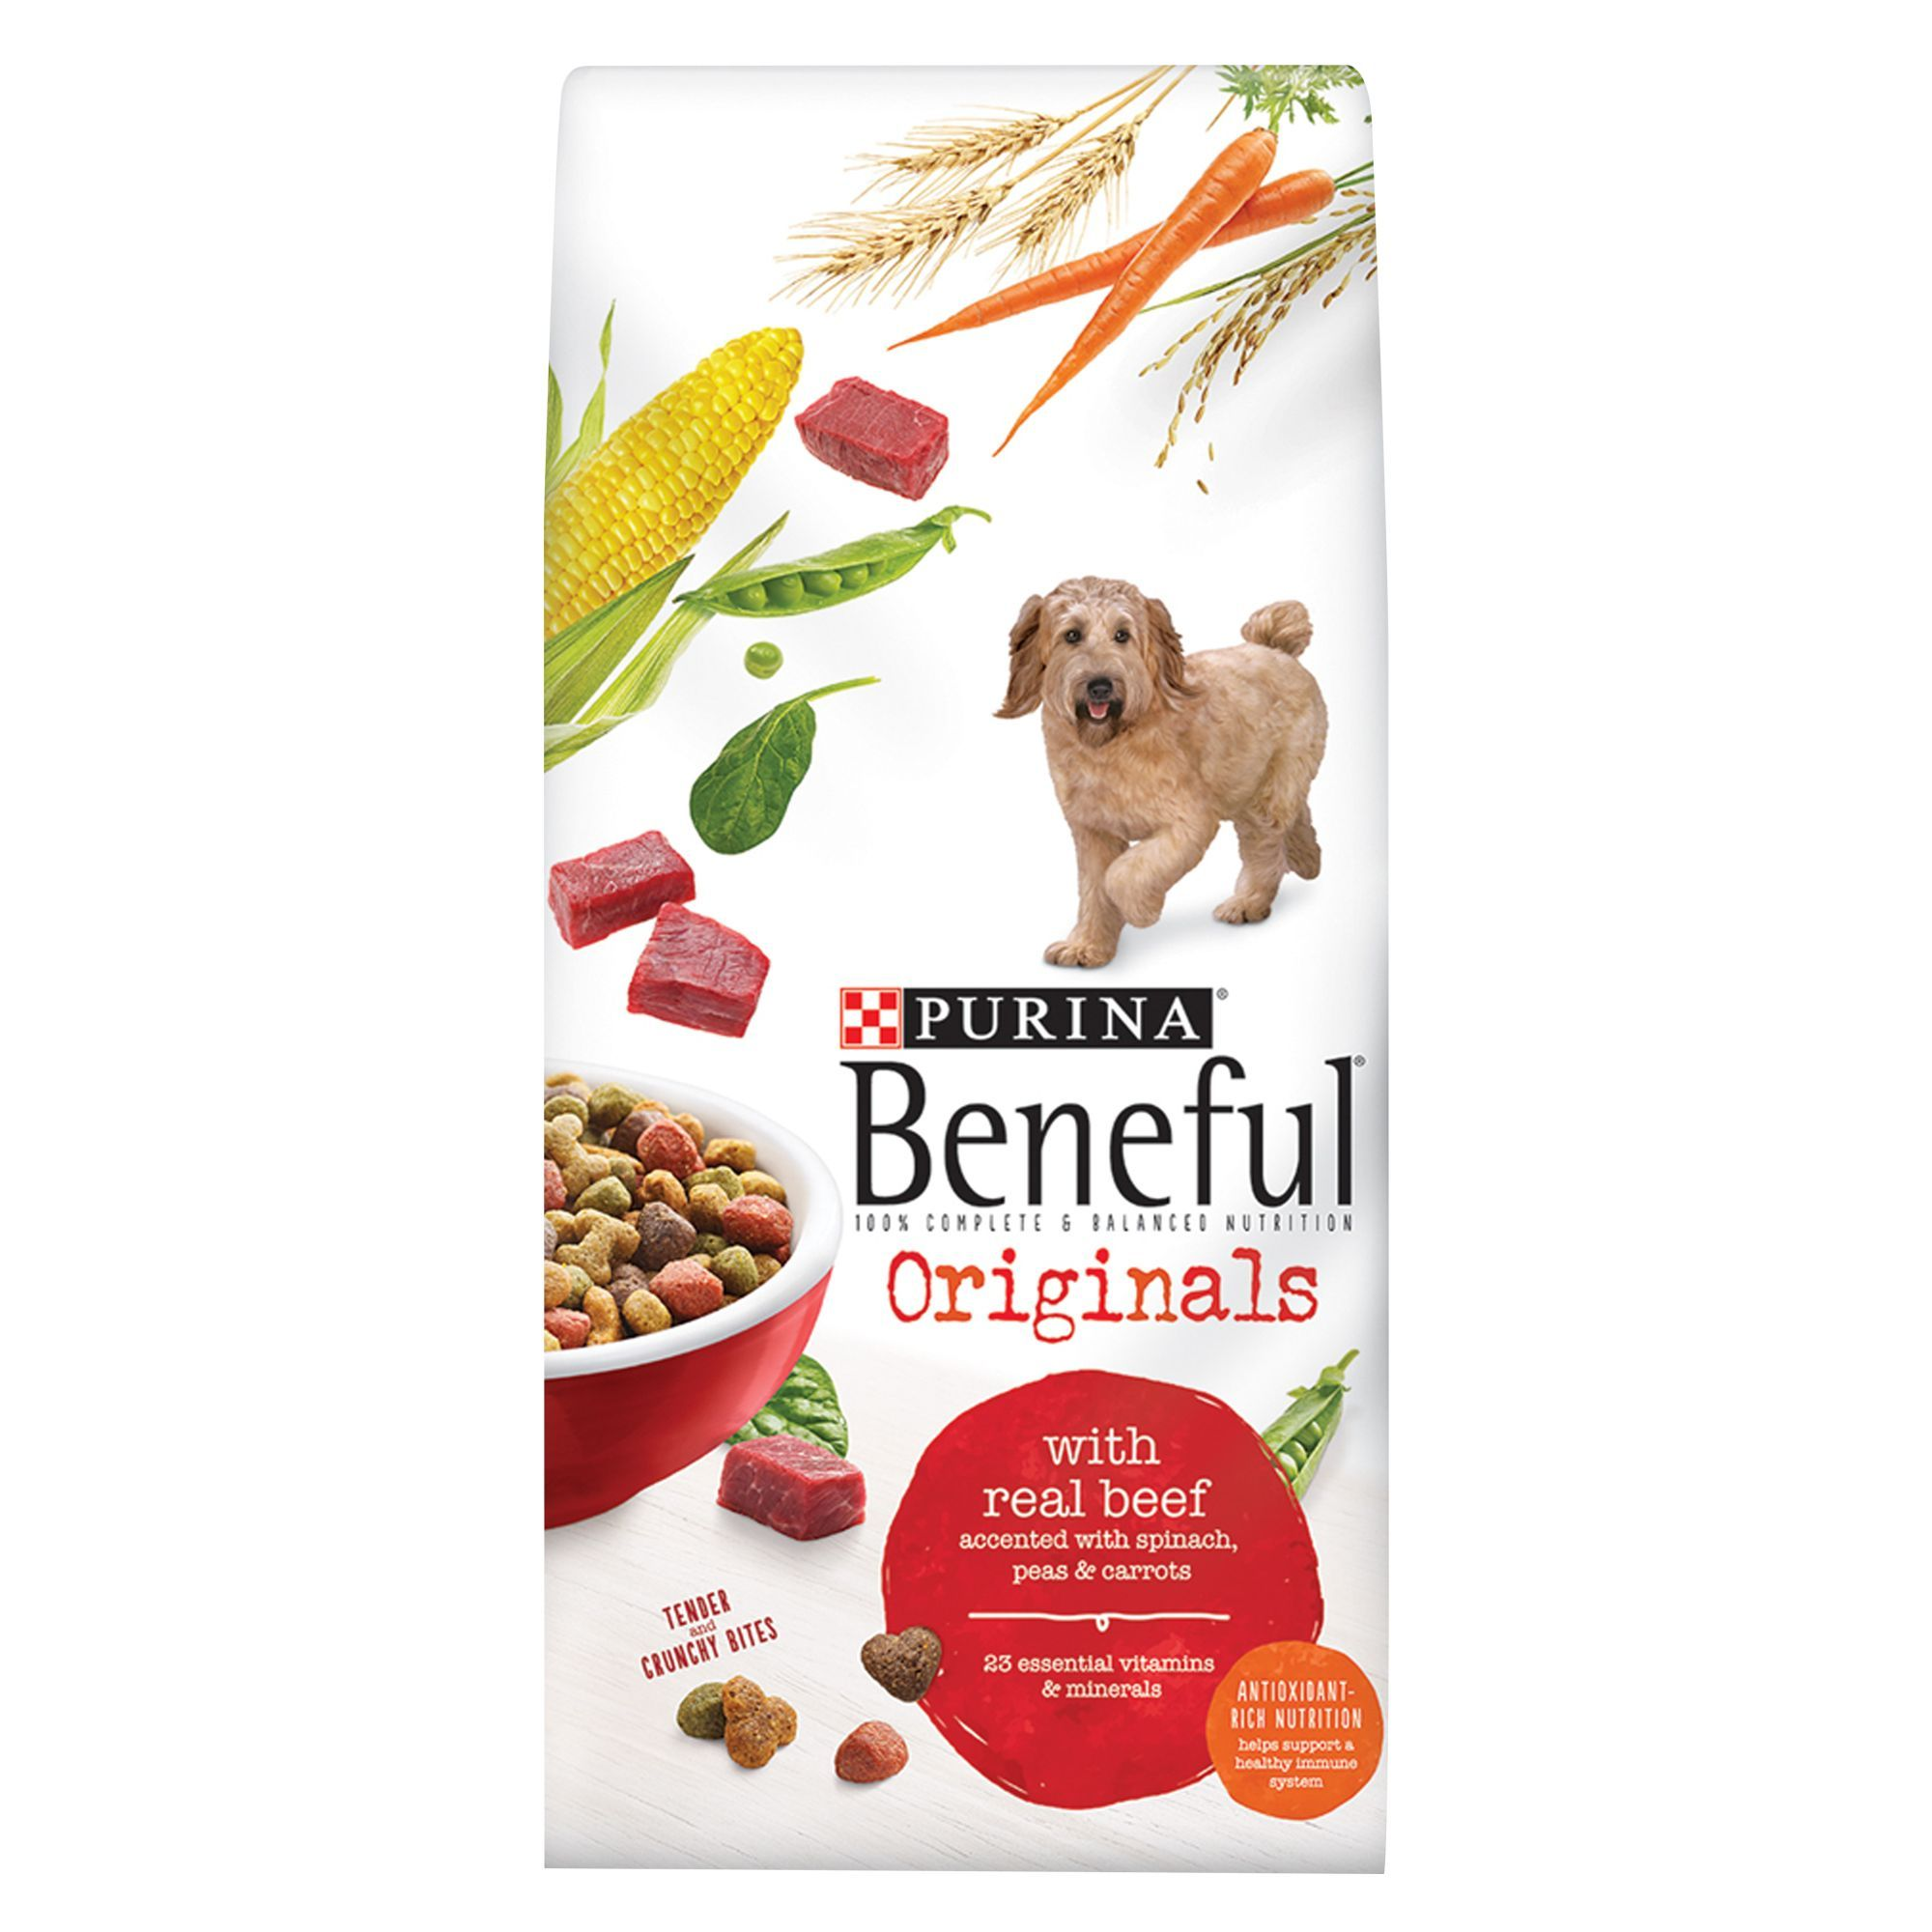 Purina Beneful Originals Adult Dog Food Beef Dog Food